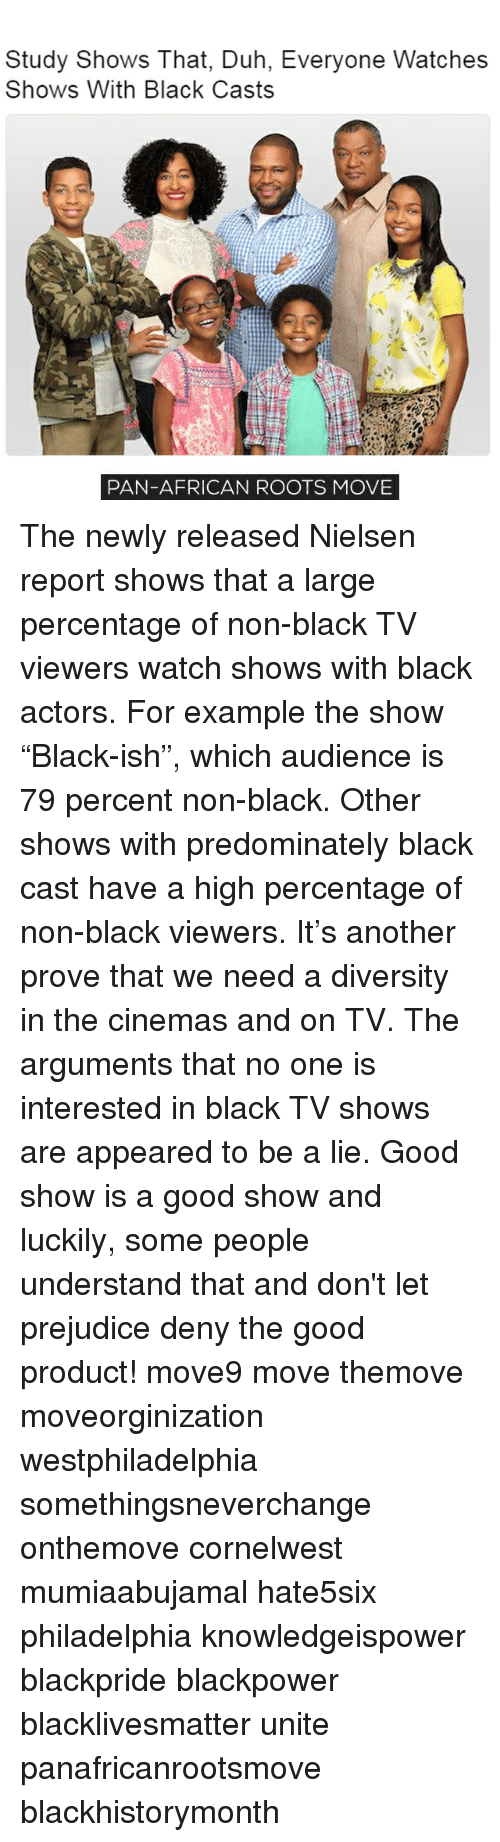 """Memes, 🤖, and Pan: Study Shows That, Duh, Everyone Watches  Shows With Black Casts  PAN-AFRICAN ROOTS MOVE The newly released Nielsen report shows that a large percentage of non-black TV viewers watch shows with black actors. For example the show """"Black-ish"""", which audience is 79 percent non-black. Other shows with predominately black cast have a high percentage of non-black viewers. It's another prove that we need a diversity in the cinemas and on TV. The arguments that no one is interested in black TV shows are appeared to be a lie. Good show is a good show and luckily, some people understand that and don't let prejudice deny the good product! move9 move themove moveorginization westphiladelphia somethingsneverchange onthemove cornelwest mumiaabujamal hate5six philadelphia knowledgeispower blackpride blackpower blacklivesmatter unite panafricanrootsmove blackhistorymonth"""